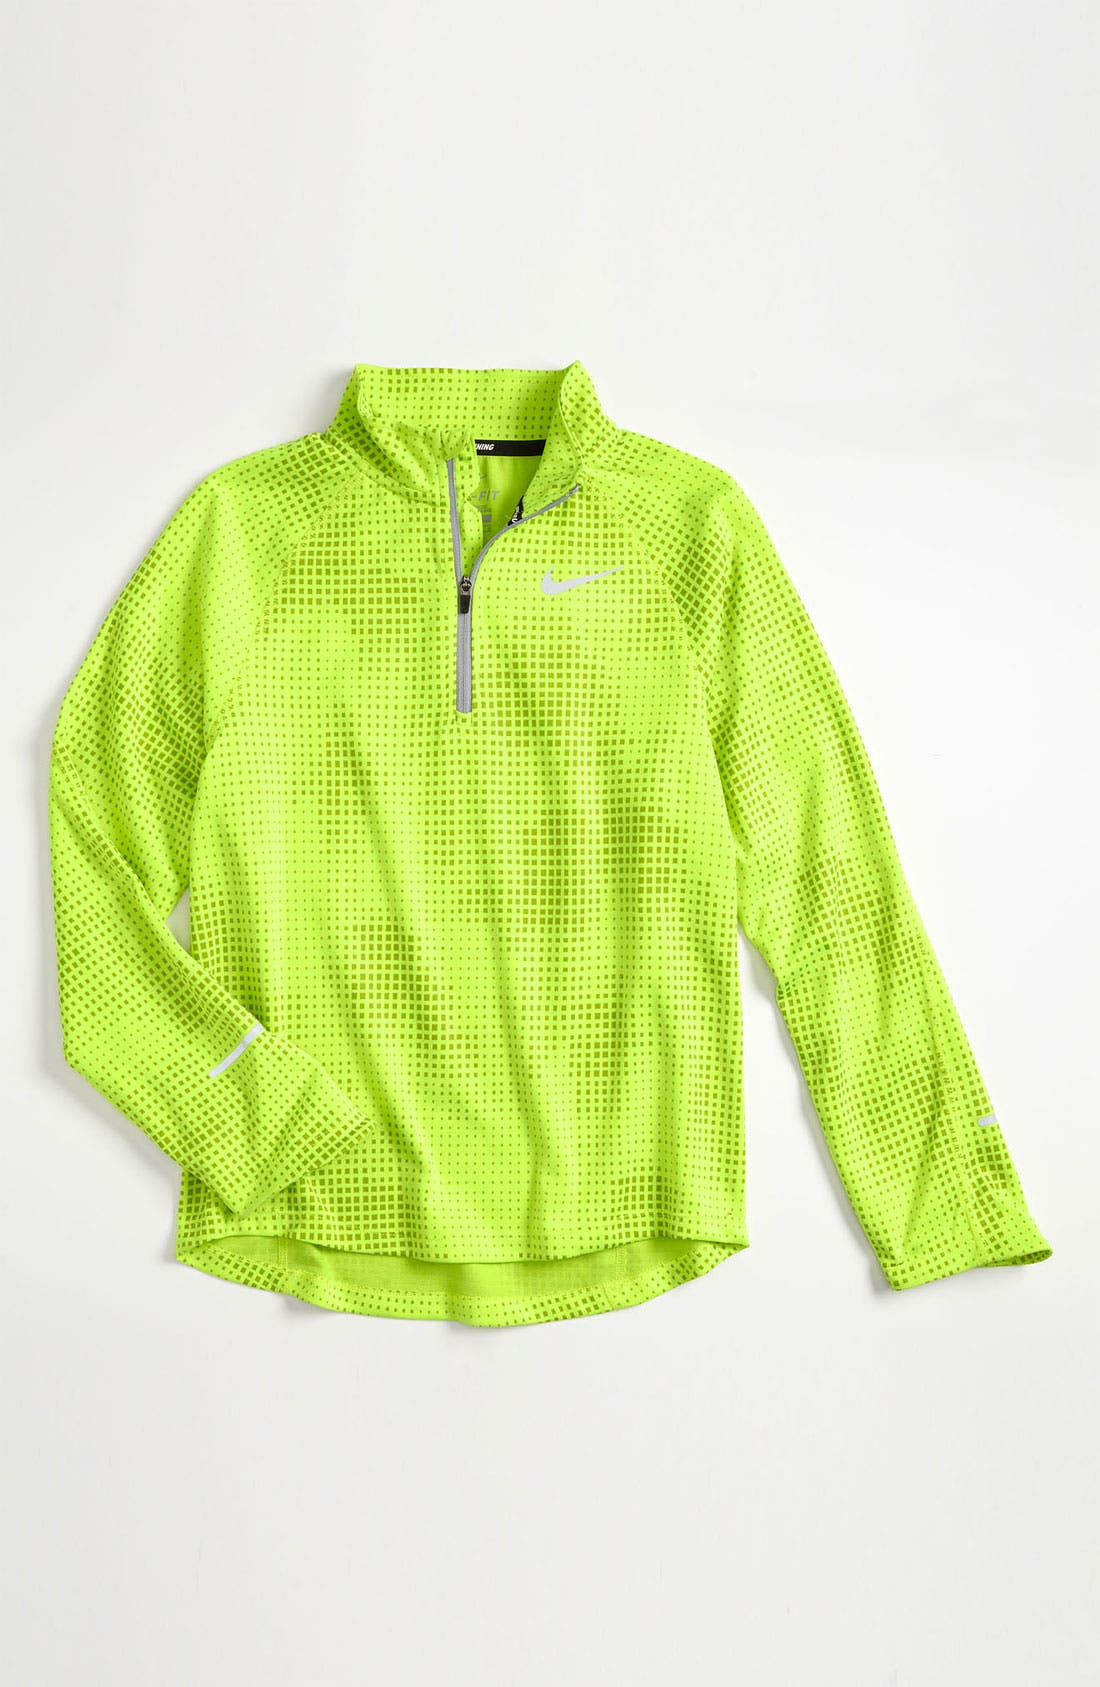 Alternate Image 1 Selected - Nike 'Element' Half Zip Pullover (Big Boys)